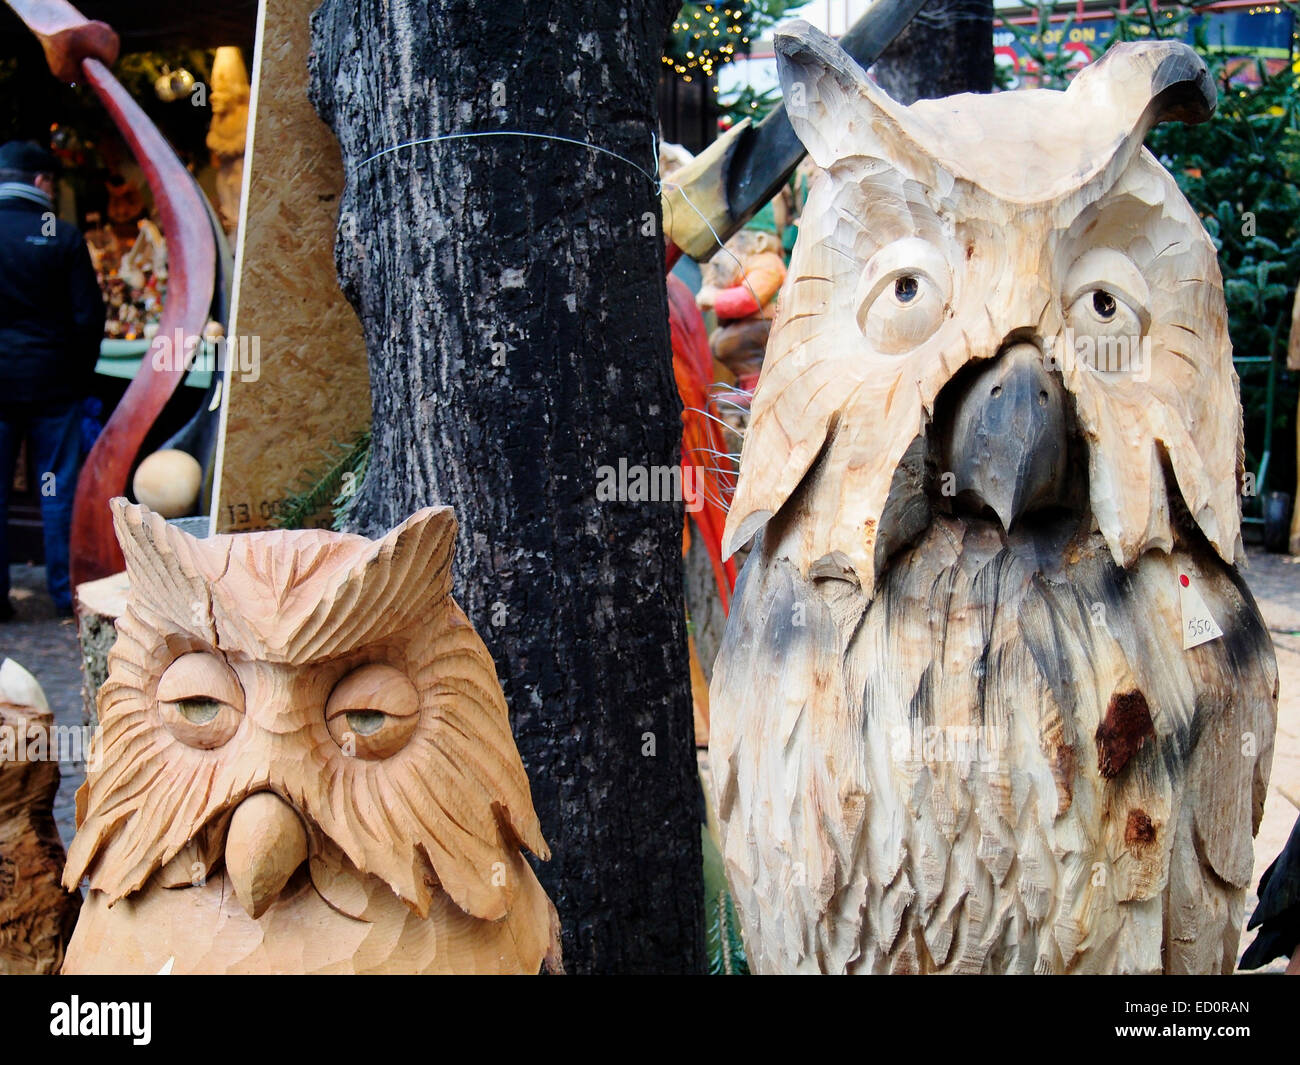 Weihnachtsmarkt Owl.Carved Wooded Owls In The Home Of The Elves Heimat Der Heinzel